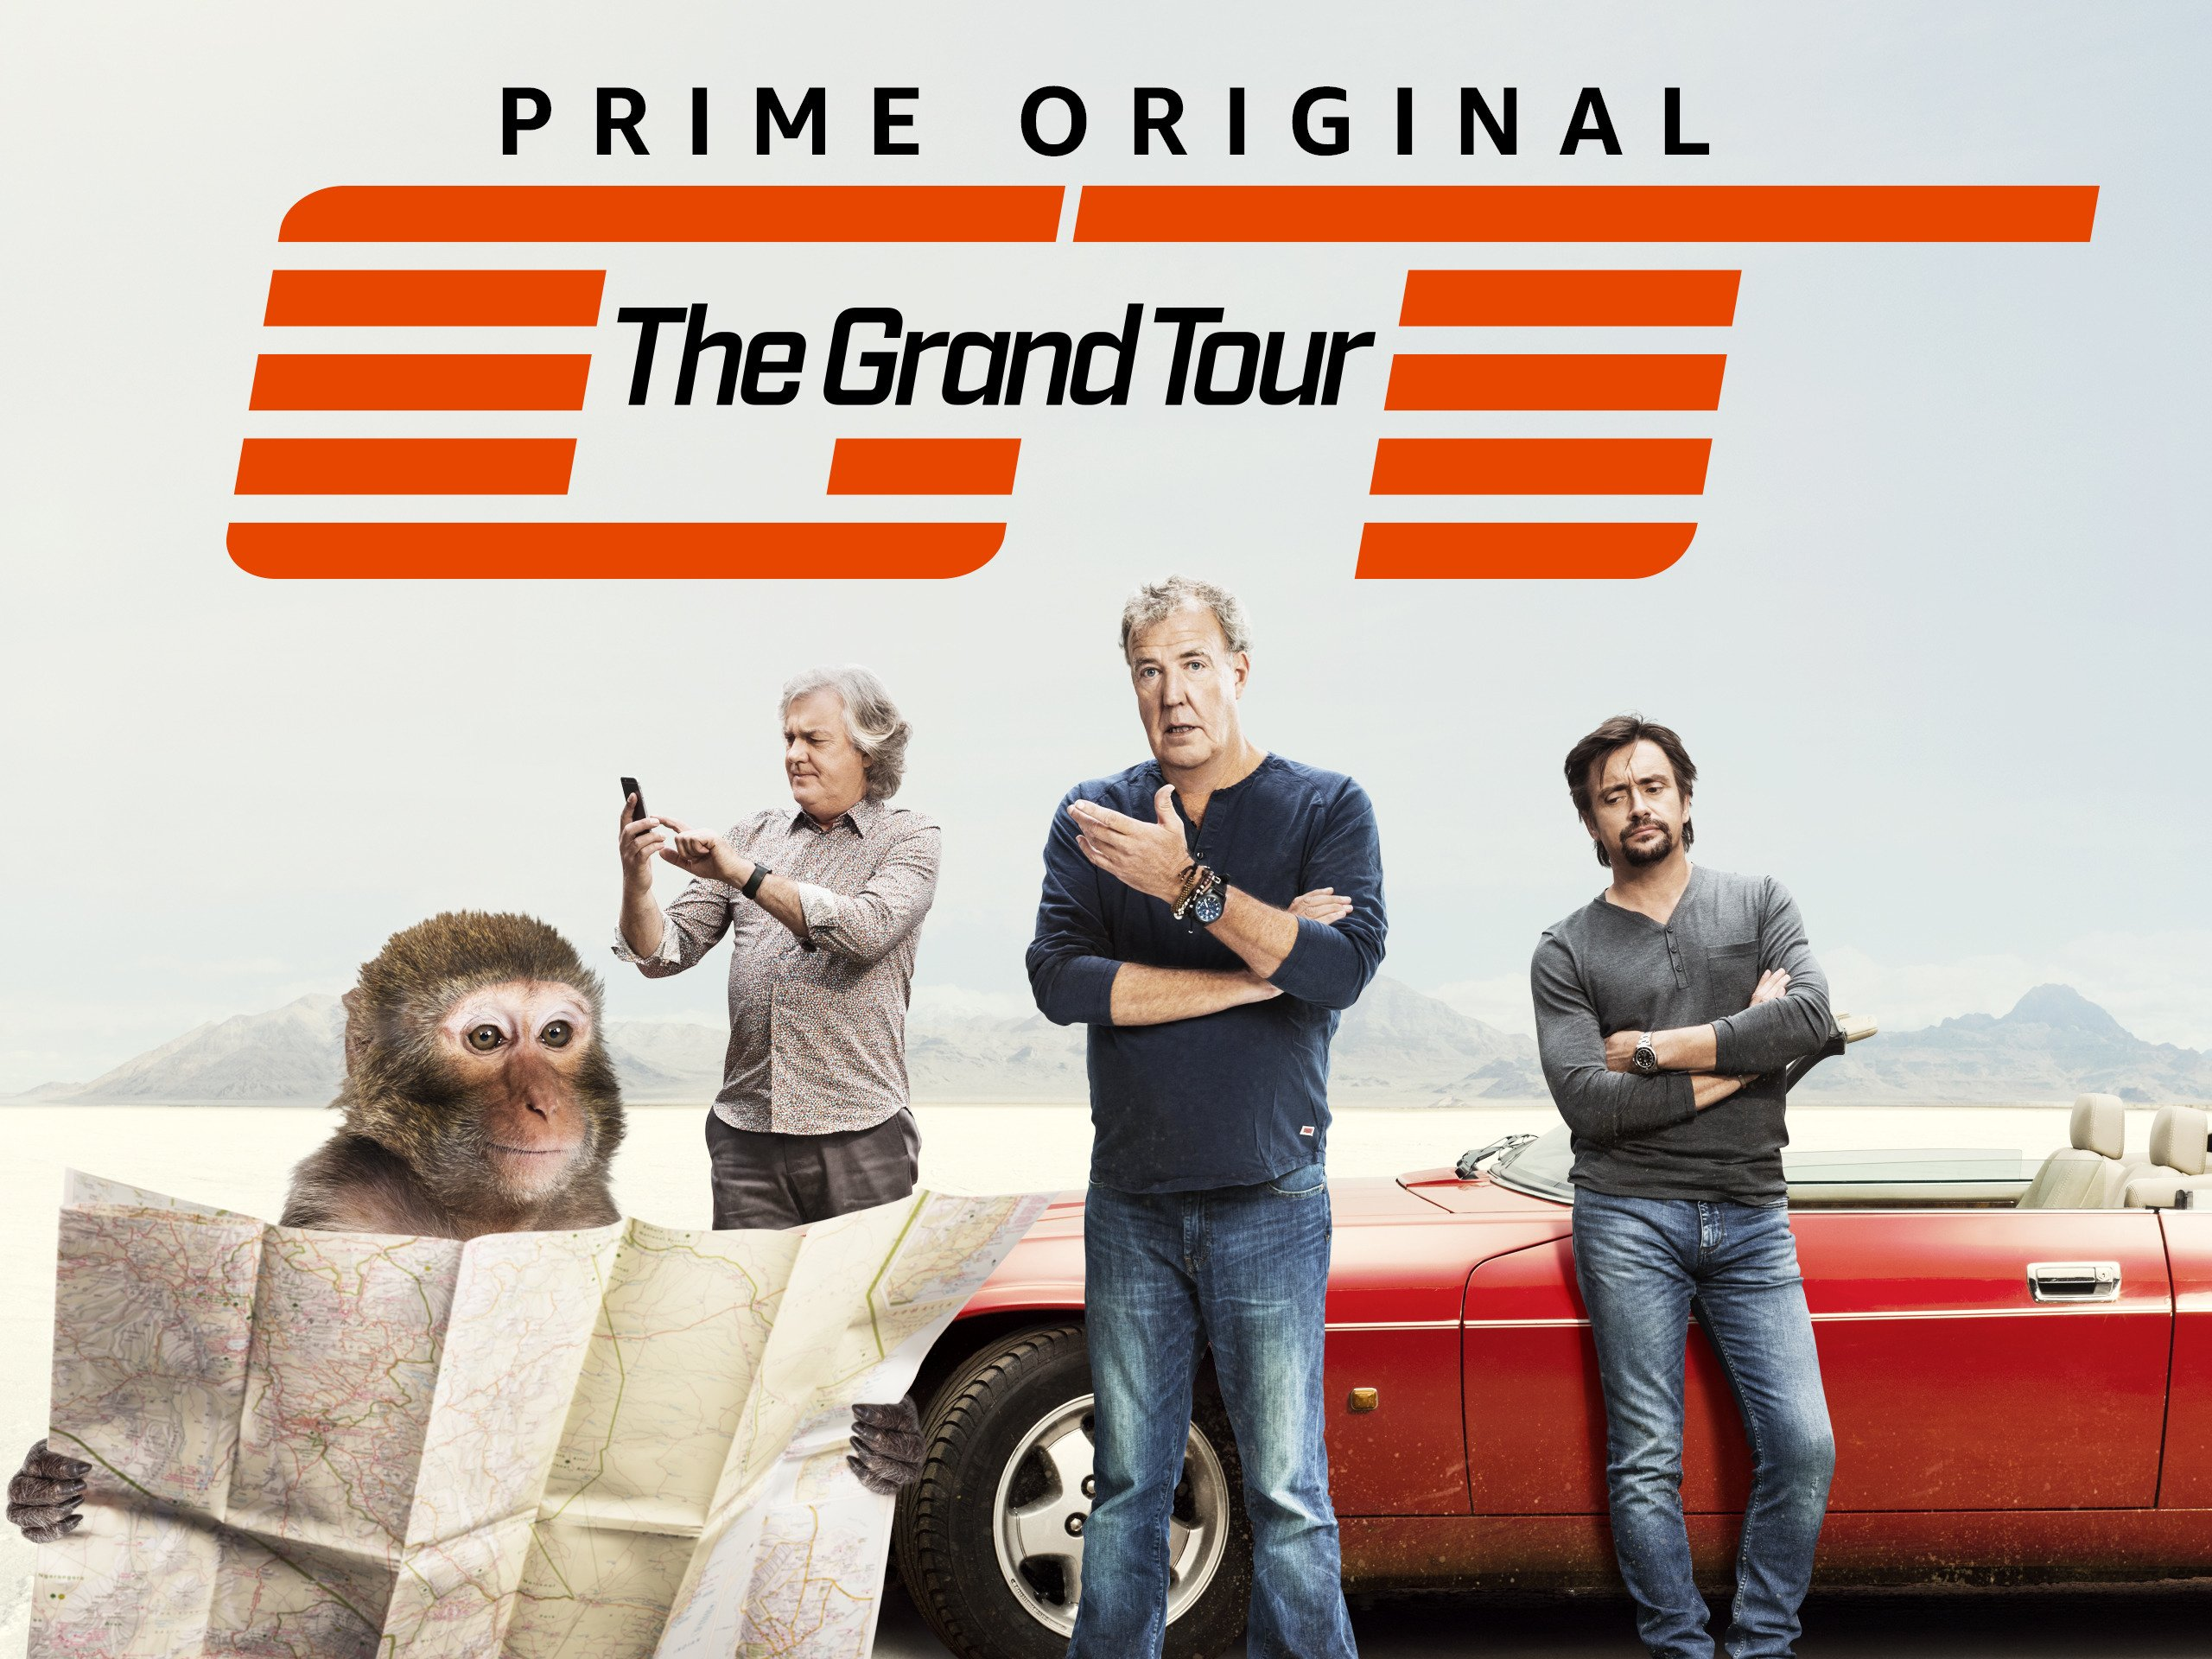 Amazon renews Grand Tour show for series of Prime Video 'specials'